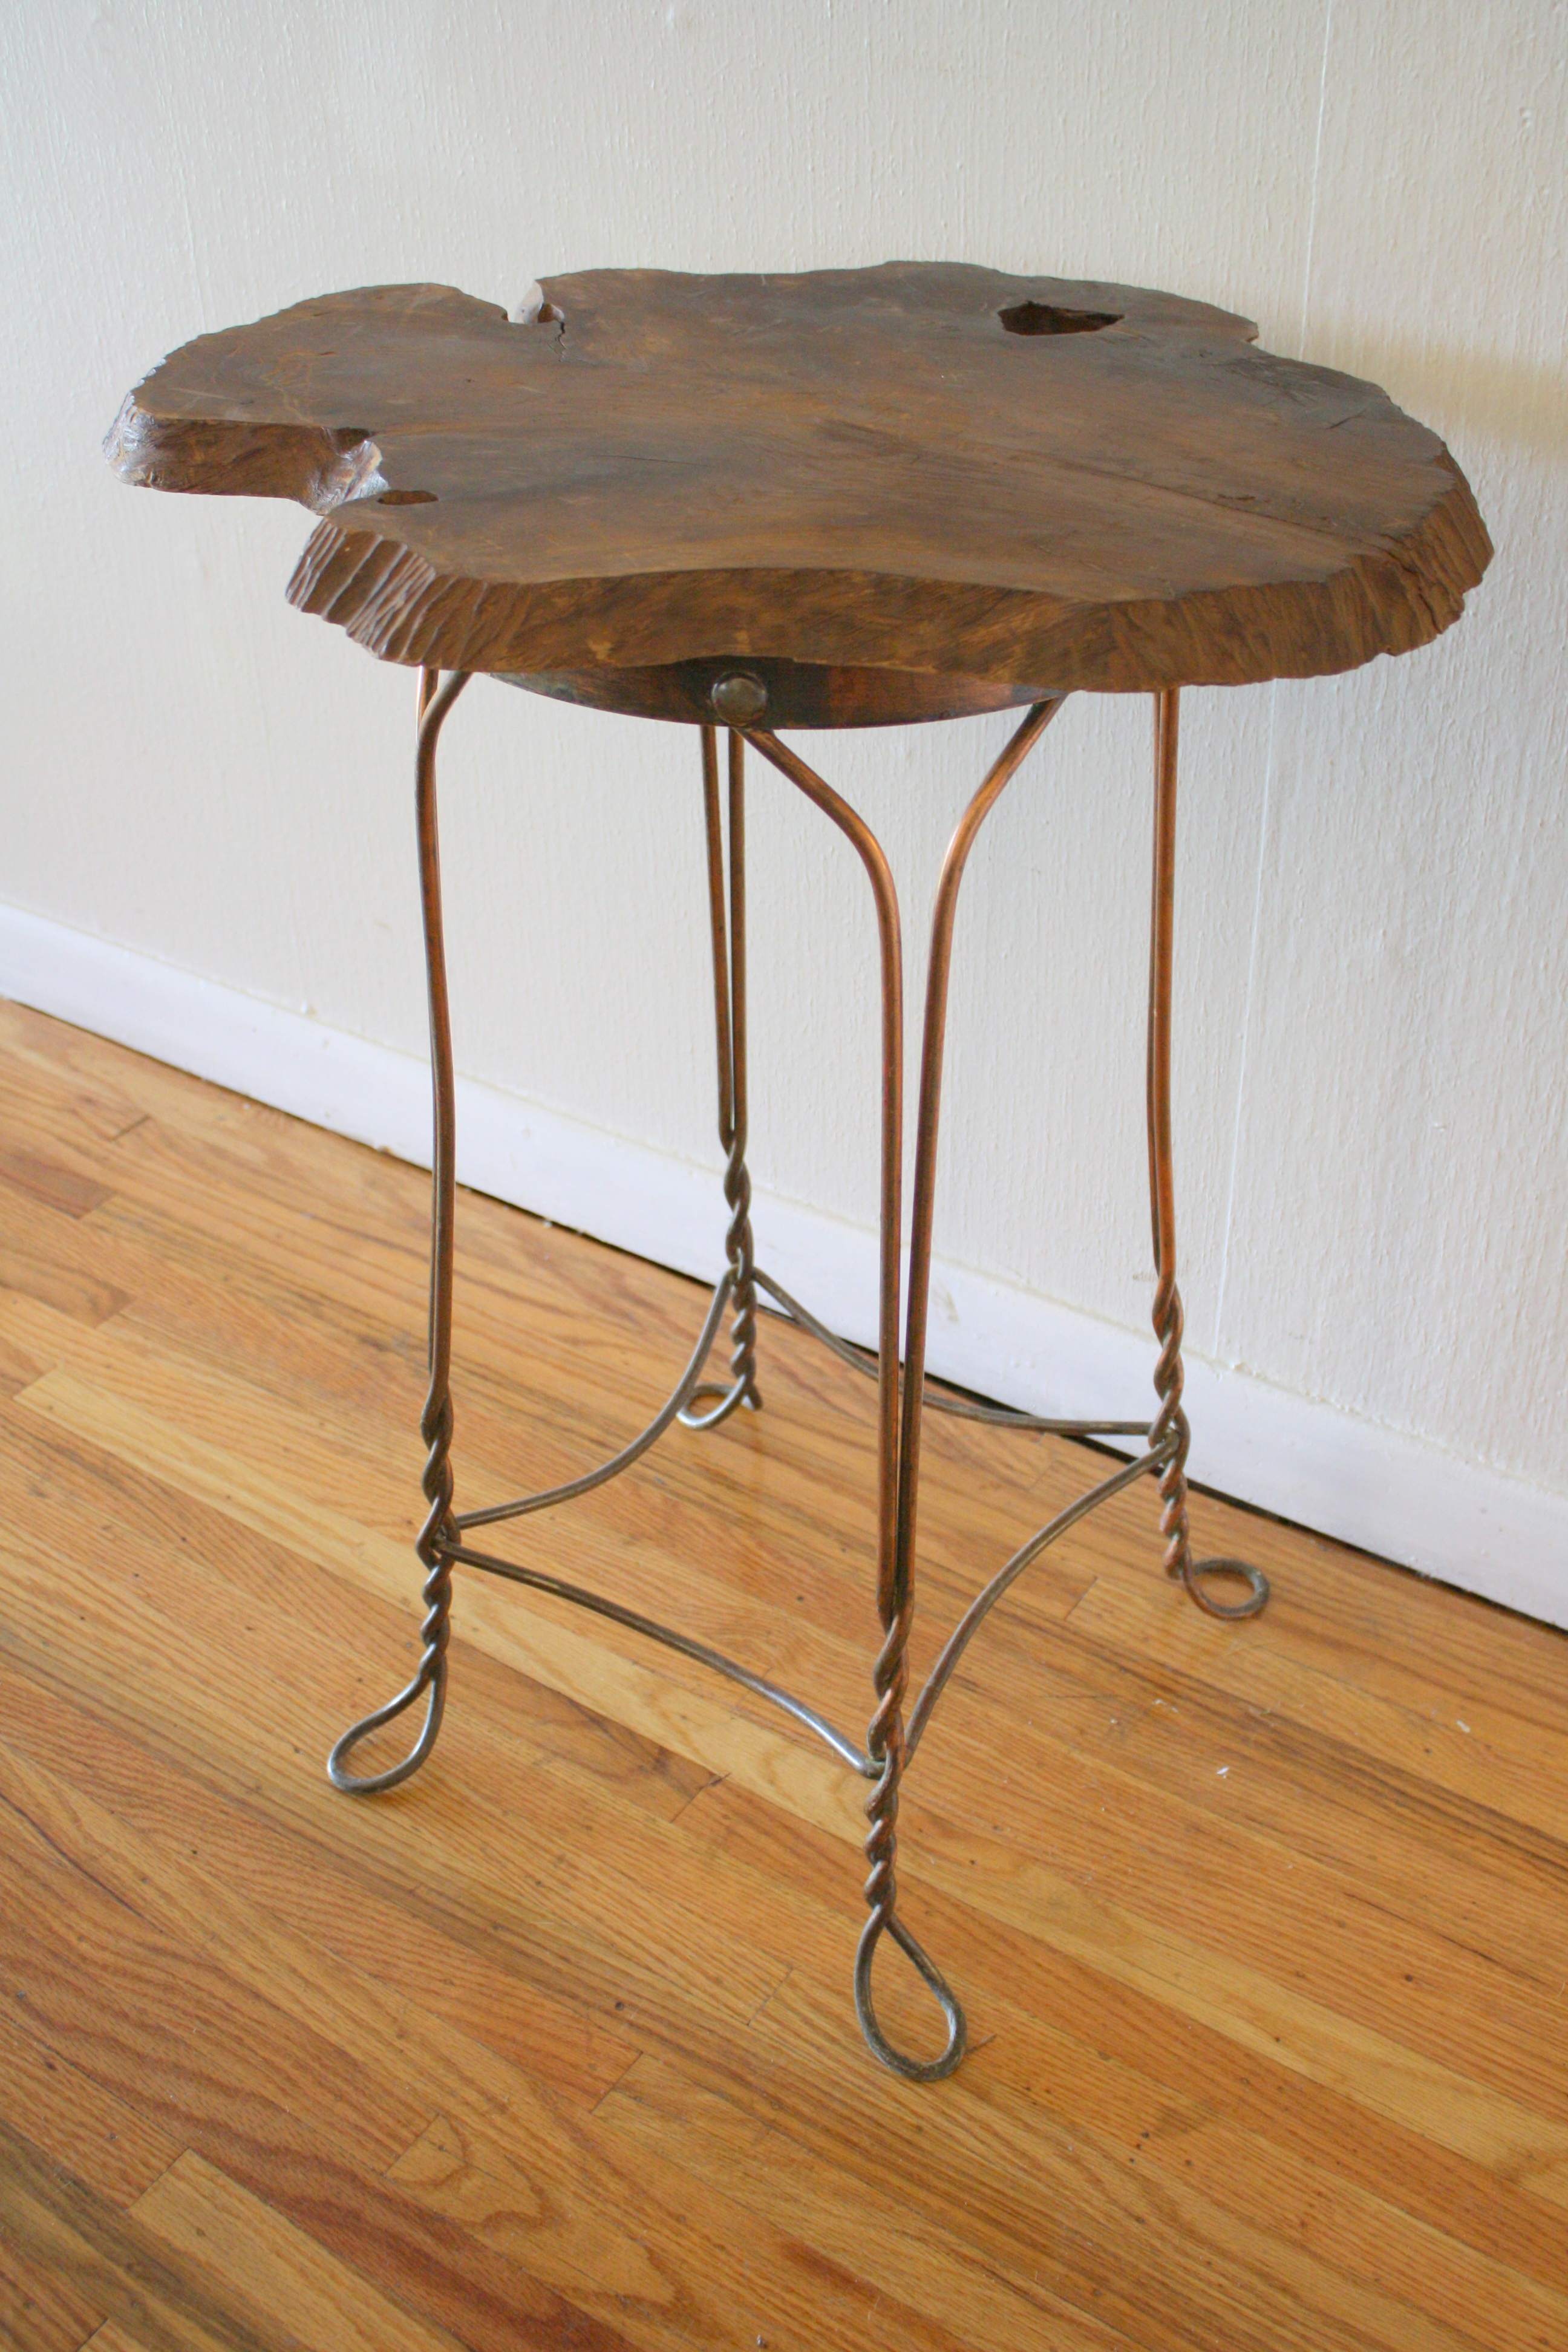 End Tables With Metal Legs Vintage Industrial Side Table Wood Slab On Steel Legs